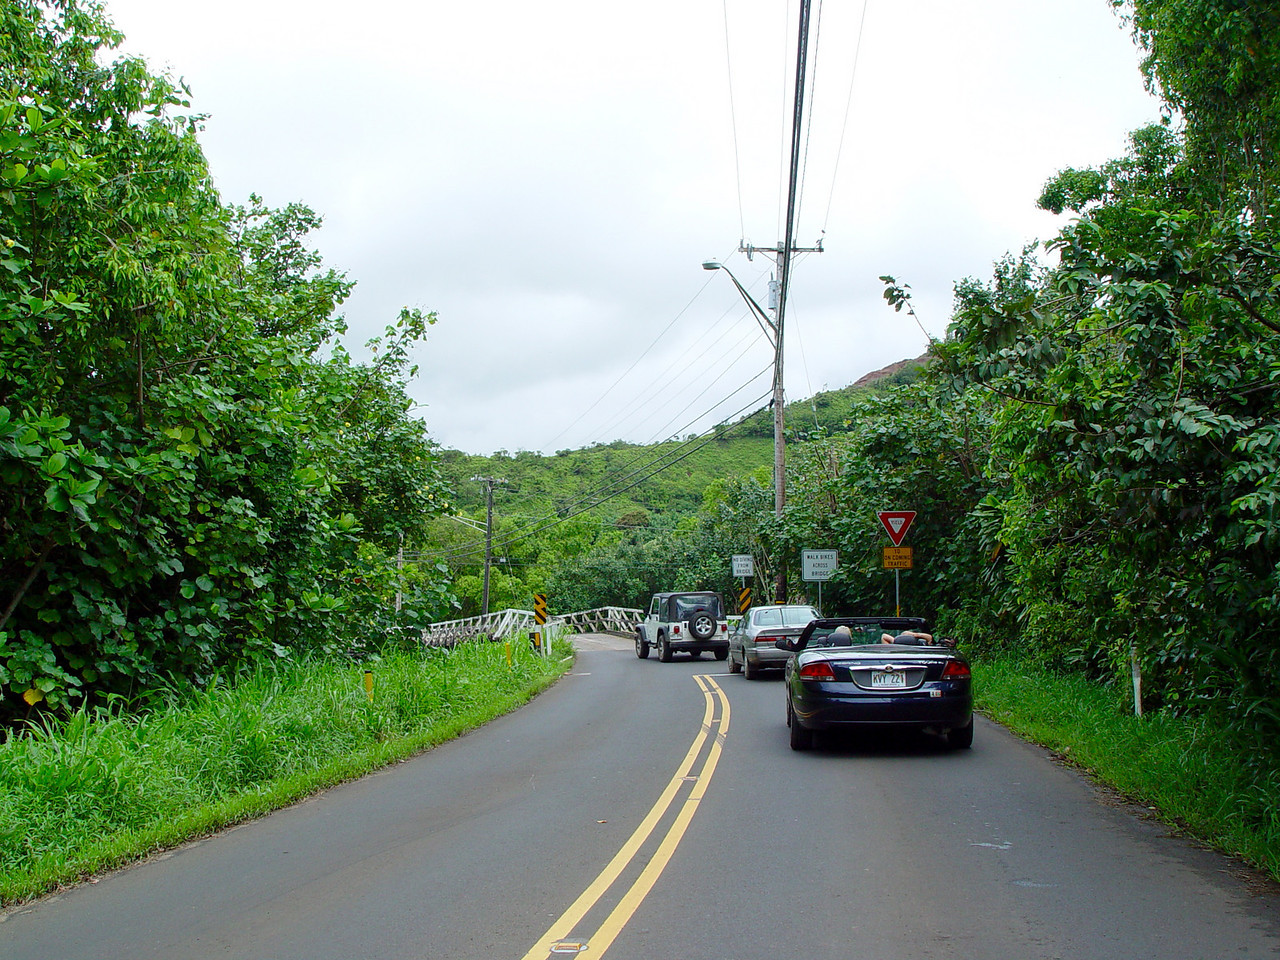 The bridges on Highway 560 are one way, which could cause traffic problems.  Not here in Kaua'i!  There is an informal protocol that everyone seems to understand, that once three to five cars have passed from one direction they yield to the next three to five cars from the opposite direction.  Imagine depending on this common courtesy in a major east coast city!?!